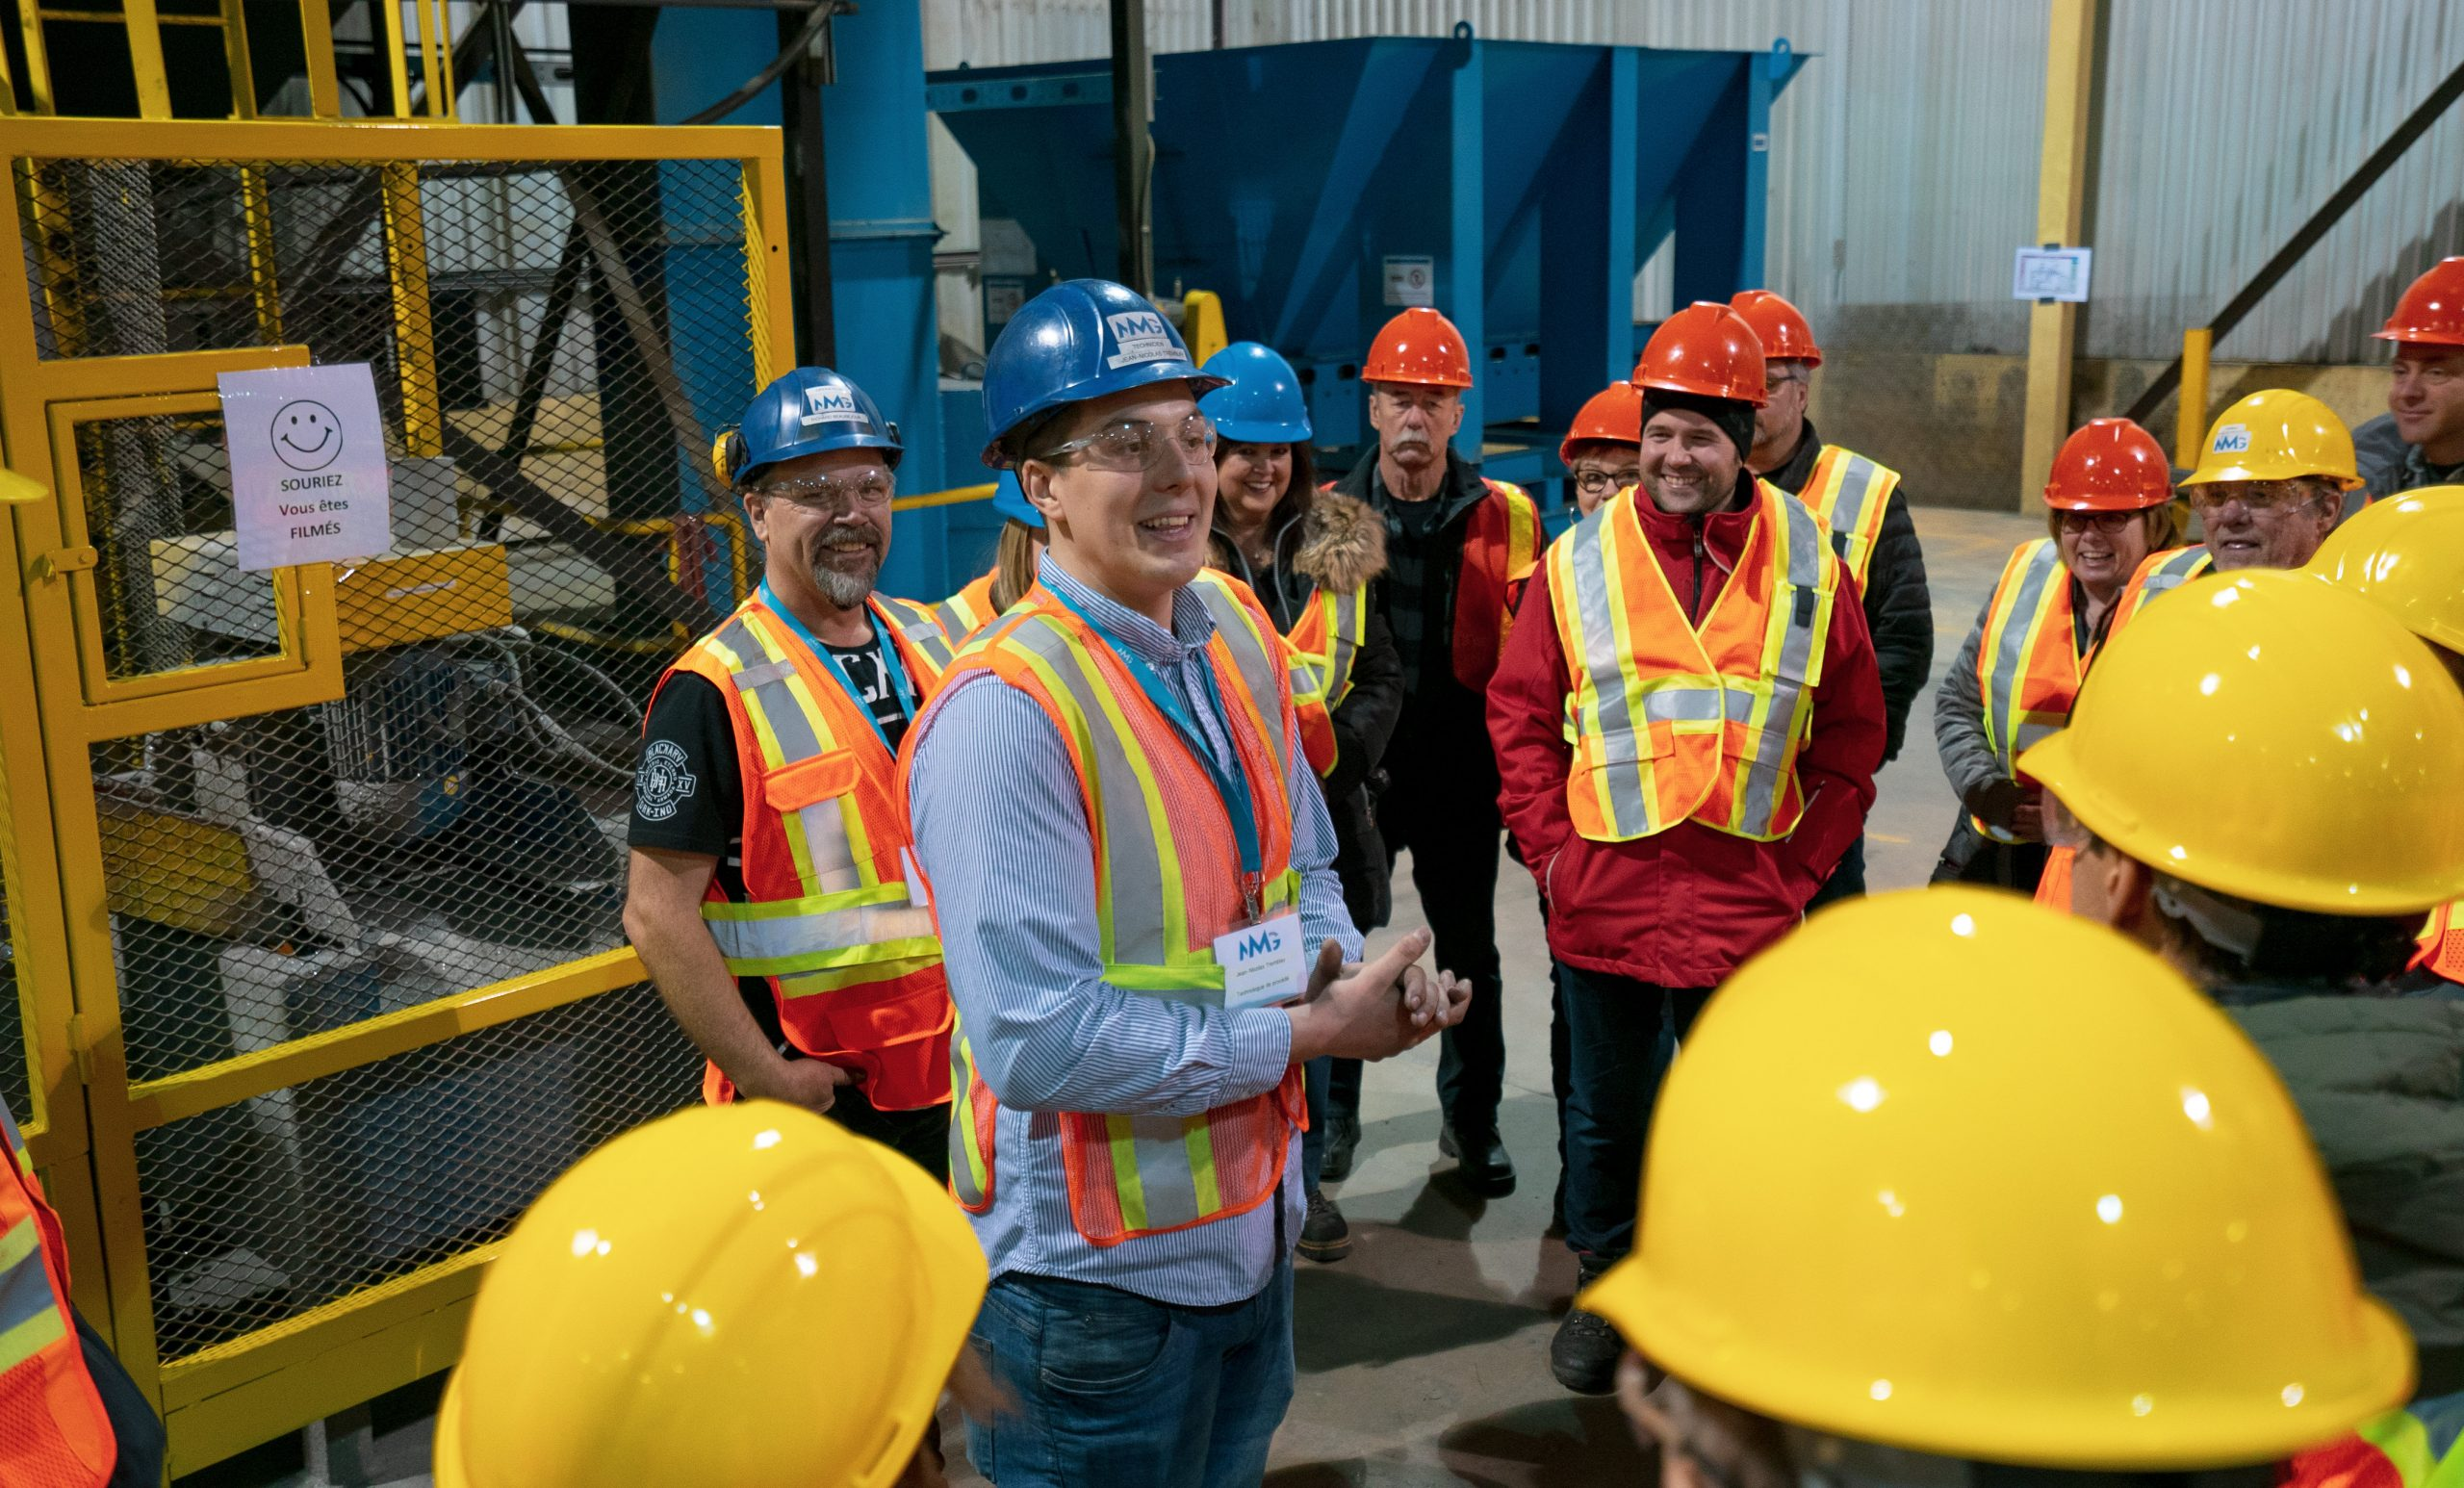 Smiling employees dressed in helmets and protective vests gathered for a meeting in a production plant.